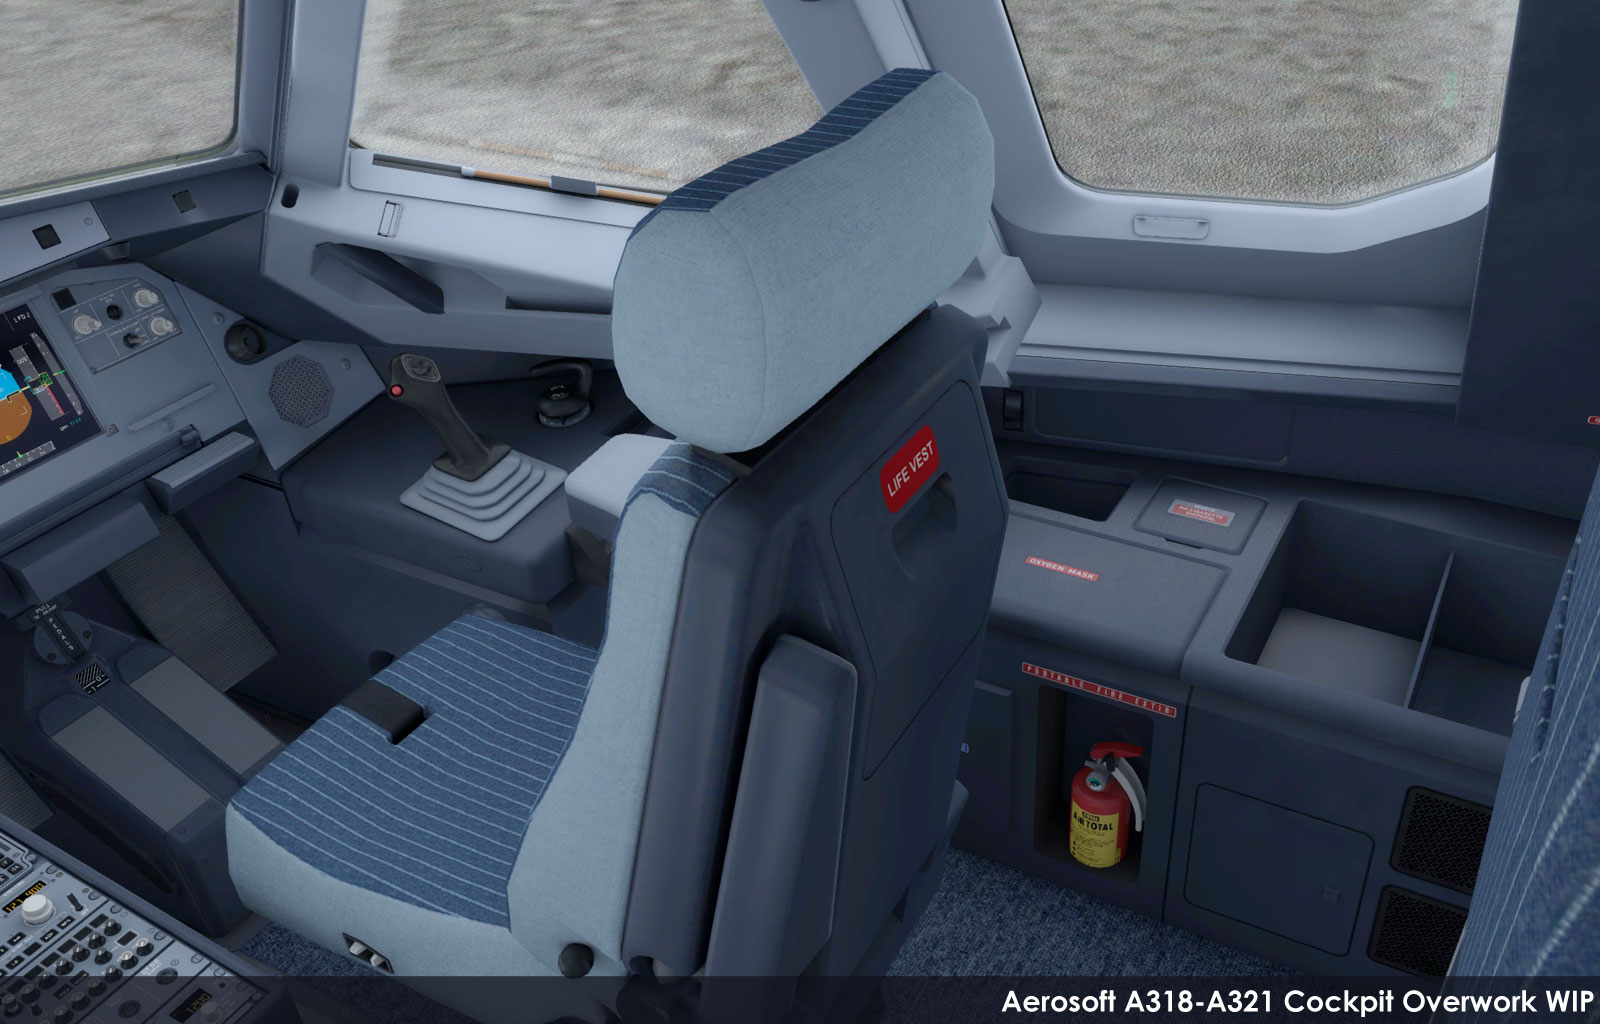 Aerosoft Airbus Professional Series Major P3Dv4 Update